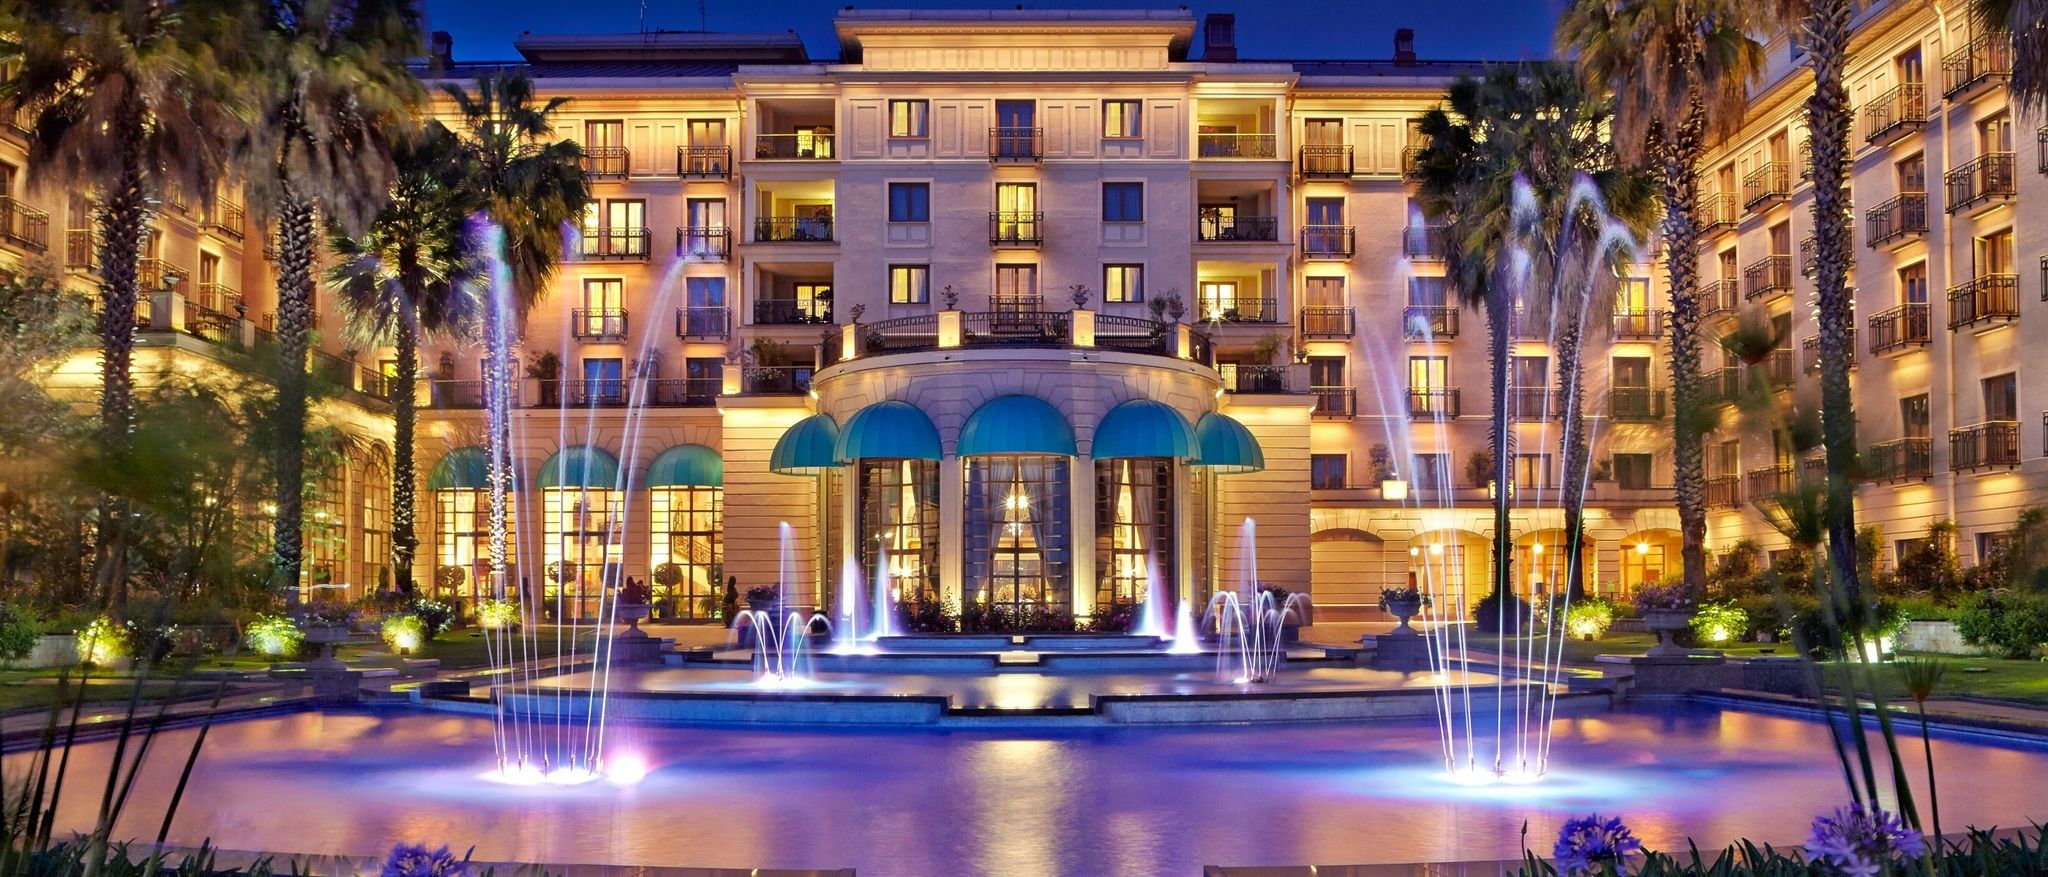 Sheraton Addis Main Entrance Lit Up At Night With Fountain In Foreground Luxury Collection Hotels Entrance Lighting Main Entrance